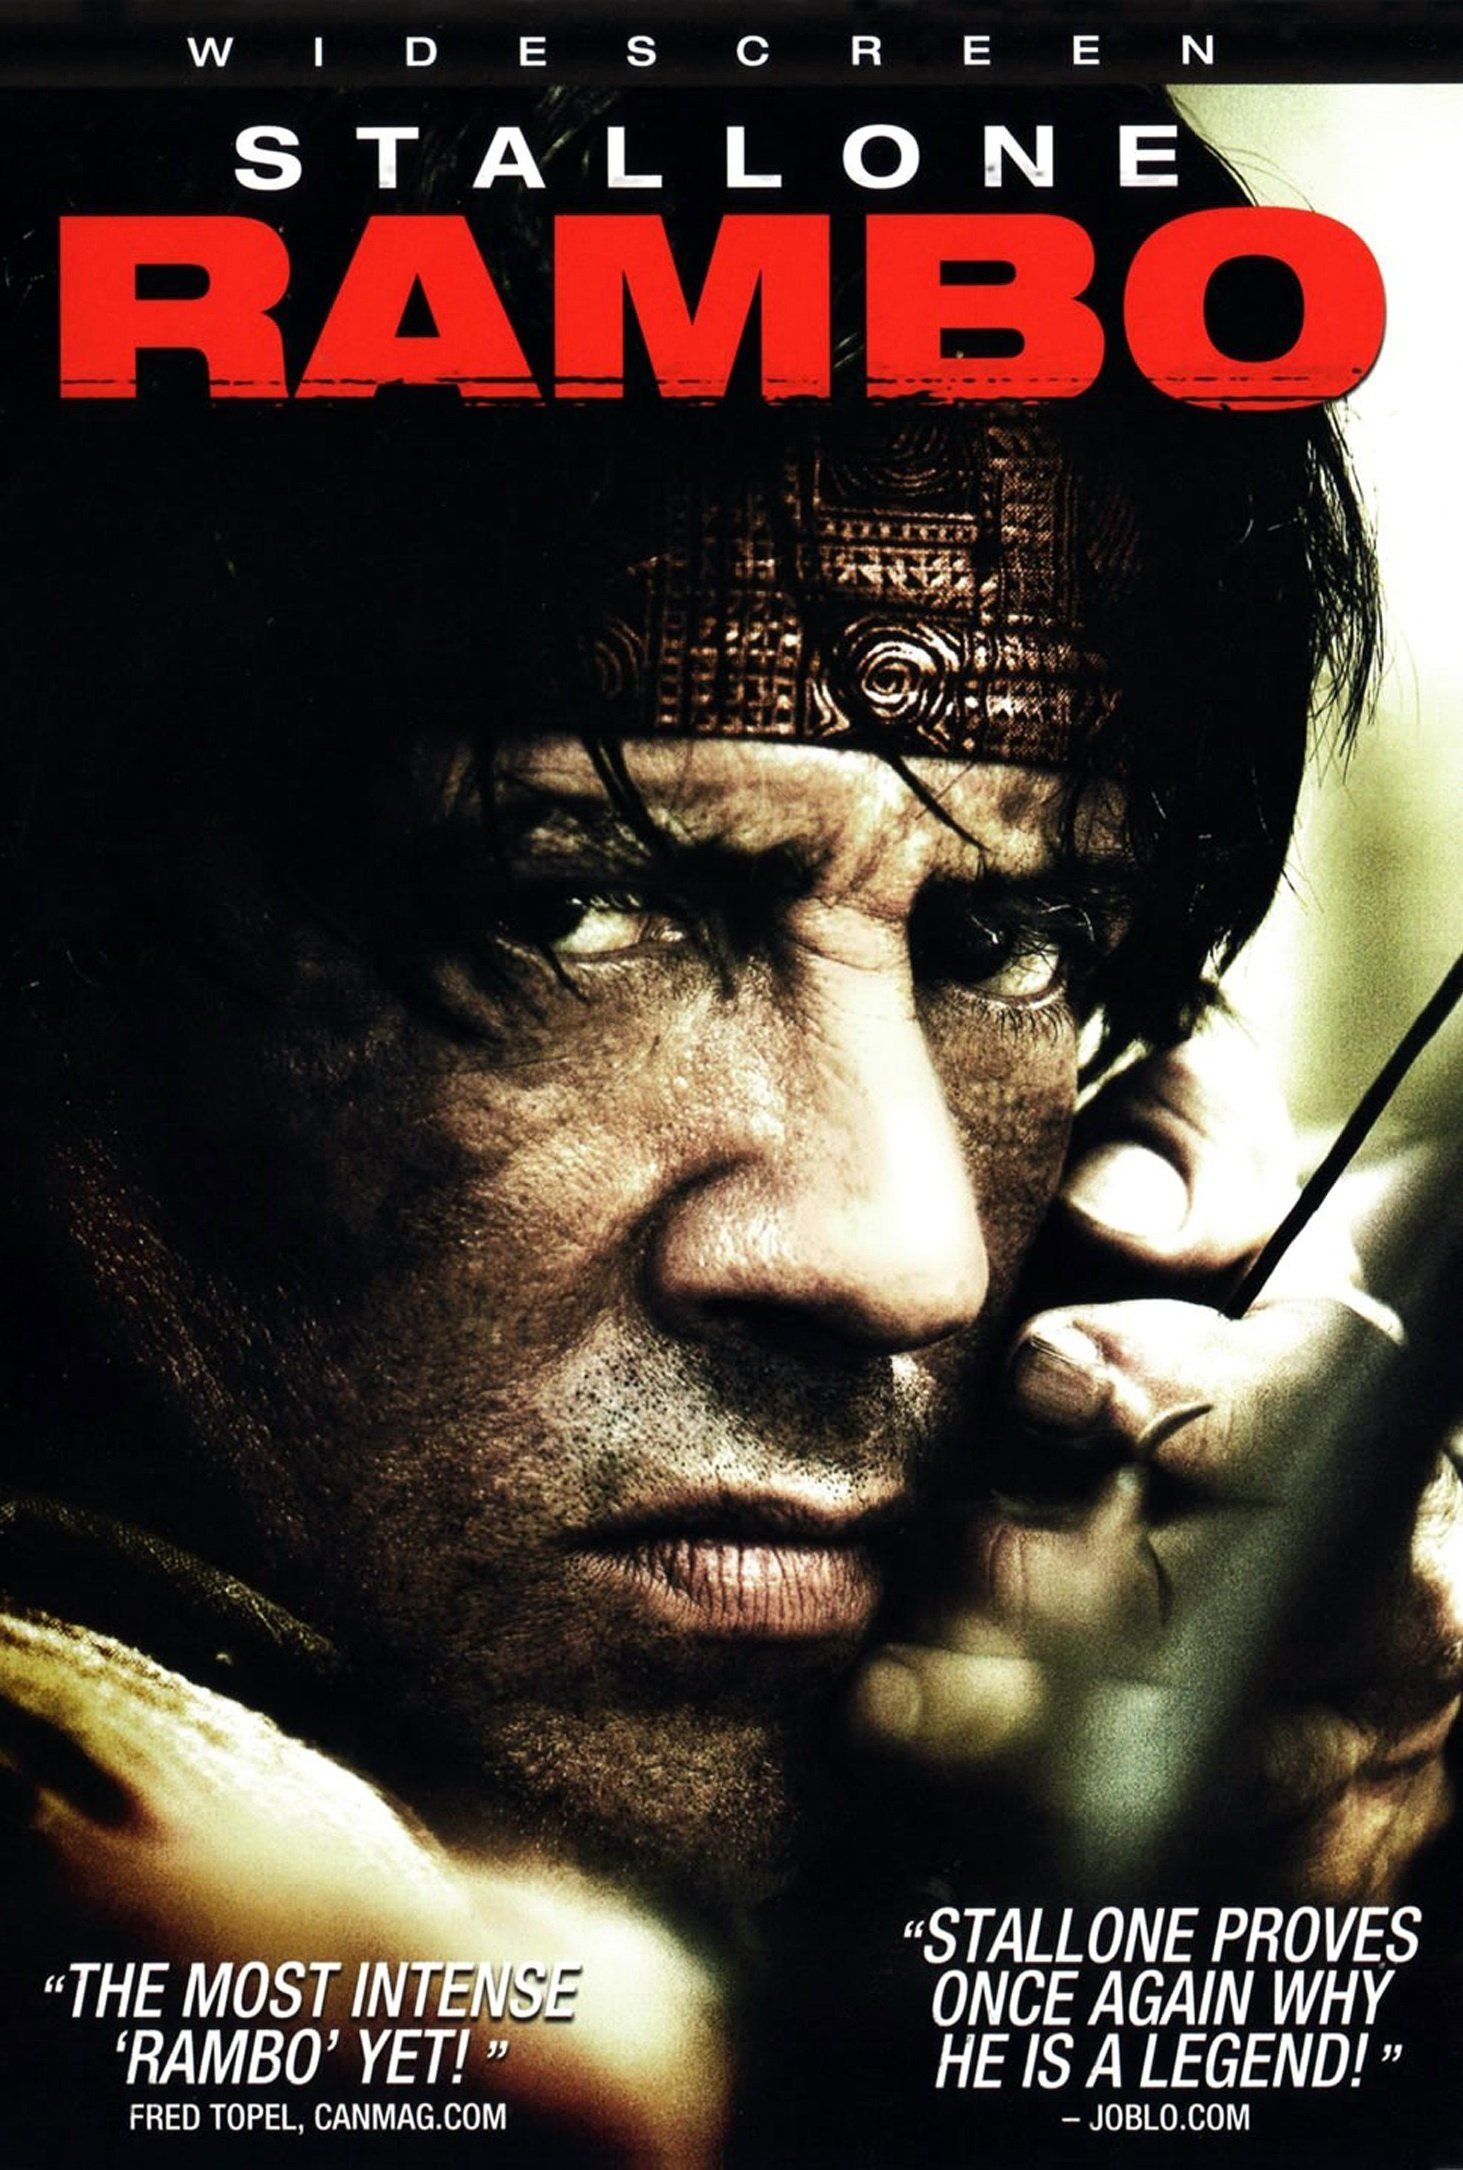 Download Rambo 2008, Watch Rambo  Watch Movies Online. Album Cover Art Creator. Penn State University Mechanical Engineering Graduate Admissions. Registration Forms Template Free. Car Wash Flyer Template. Church Design Ideas. Graduation Cap Cupcake Toppers. Graph Paper Template Pdf. Free Club Flyers